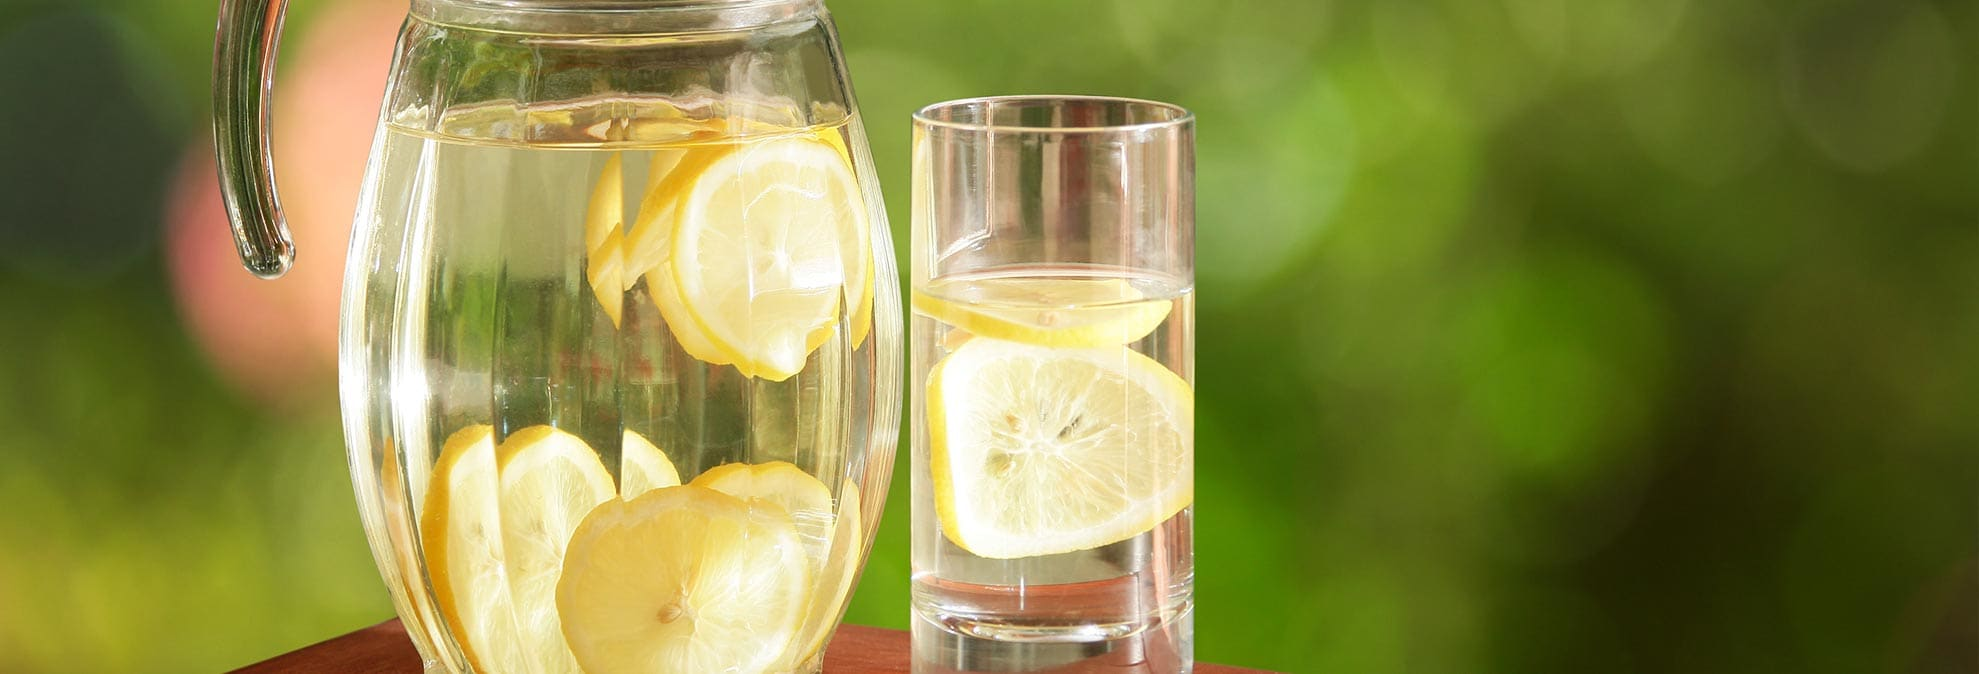 Natural Remedies For Kidney Stones Consumer Reports